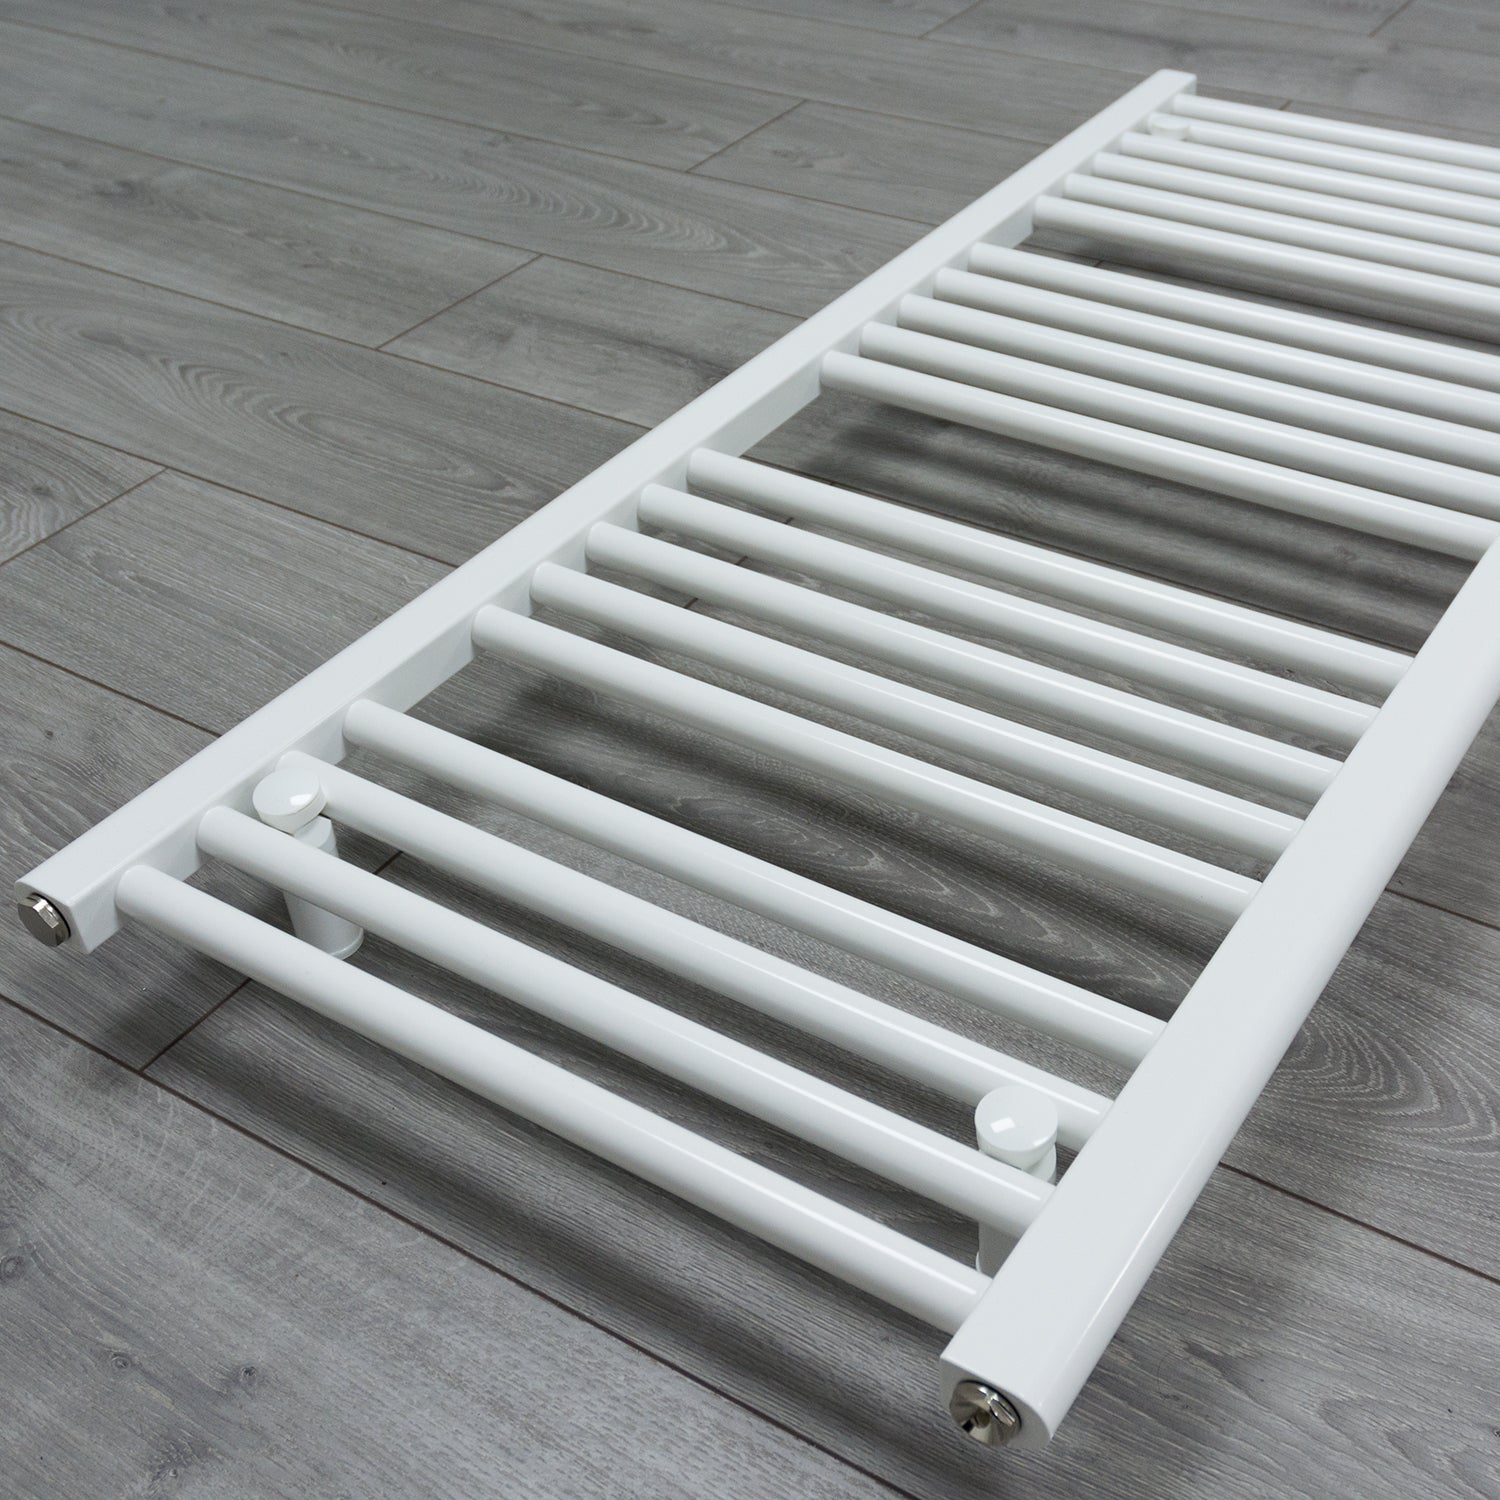 700mm x 800mm White Heated Towel Rail Radiator Close Up Image